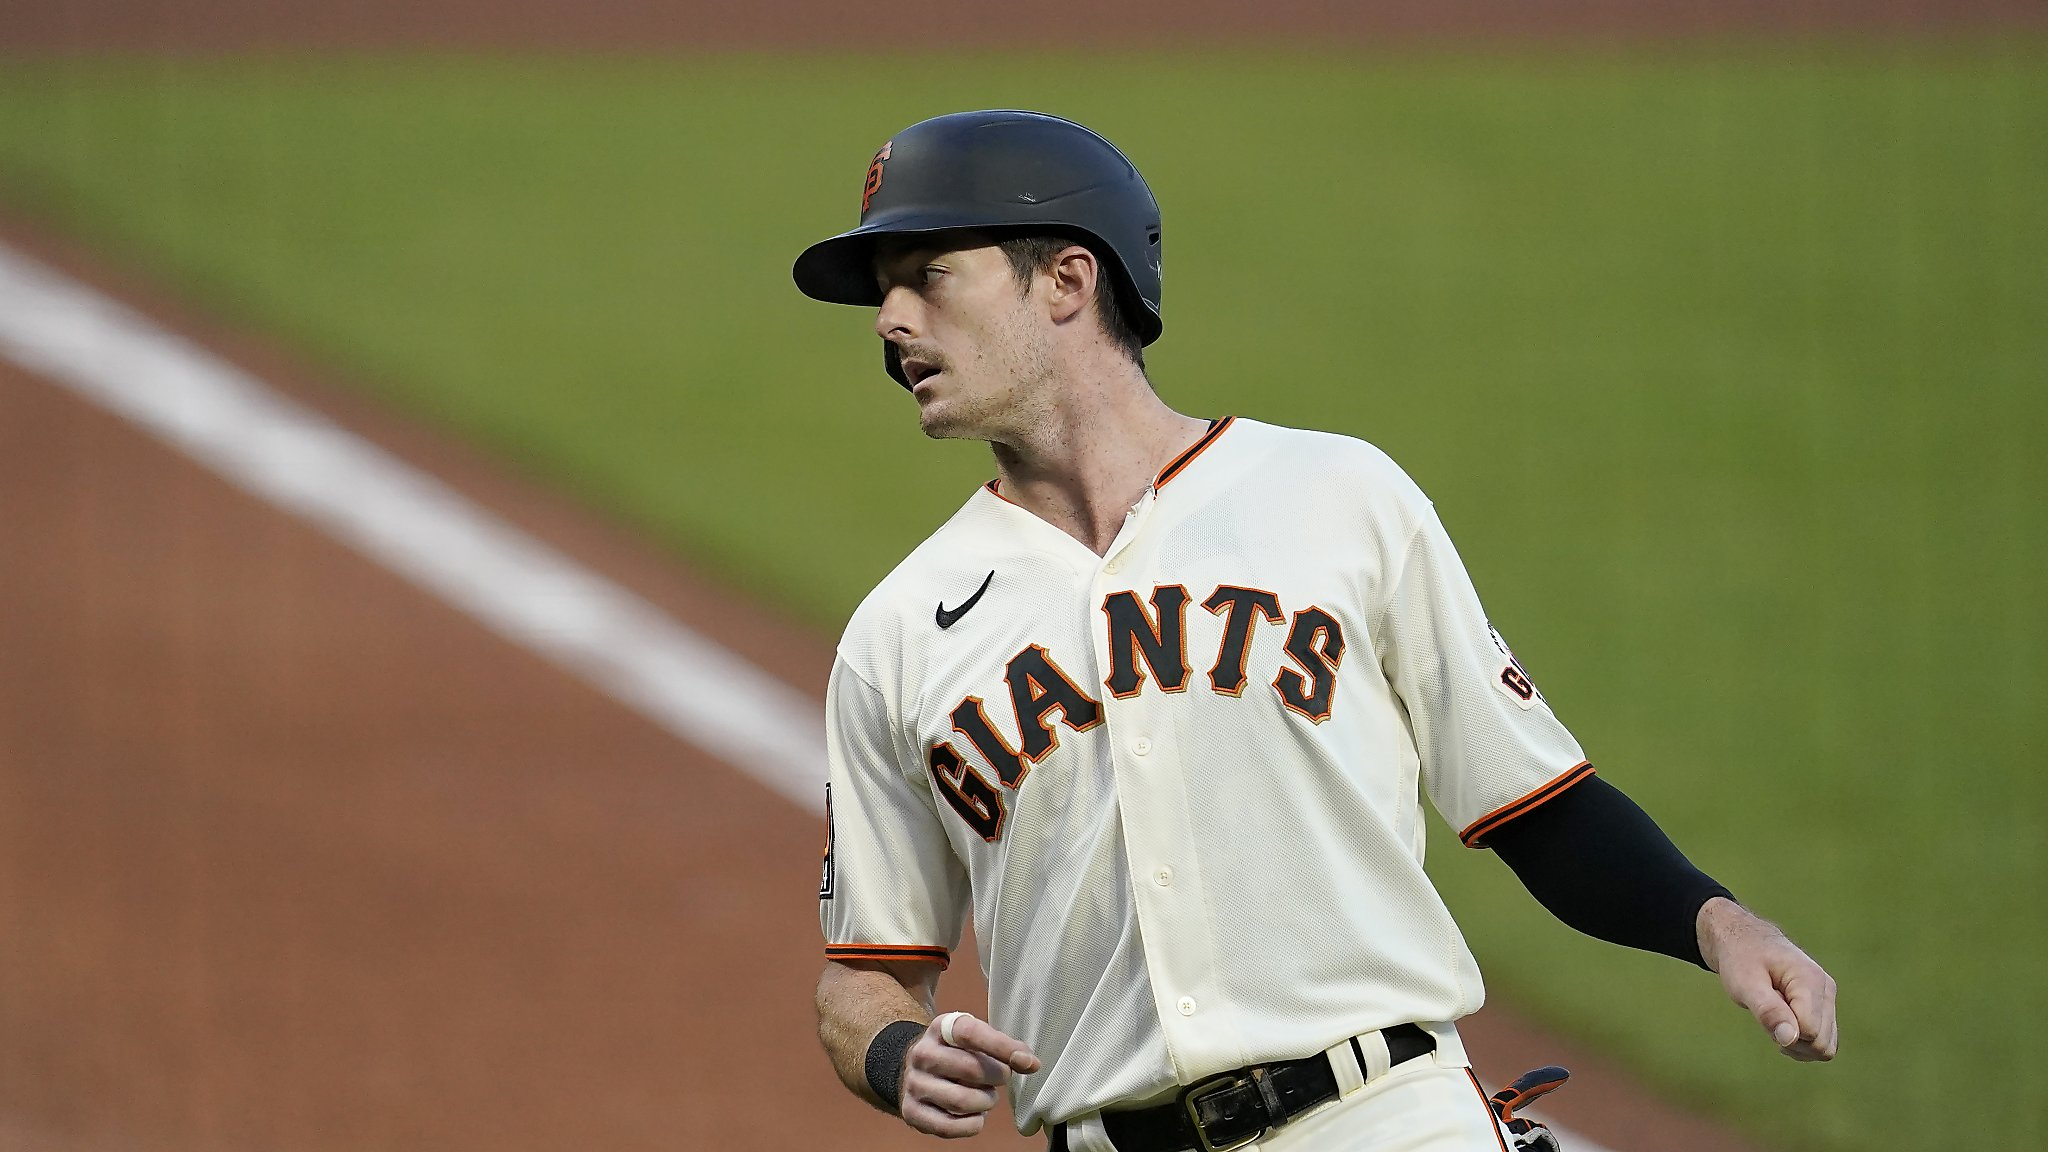 Giants' Yastrzemski leaves game against Mariners in second inning